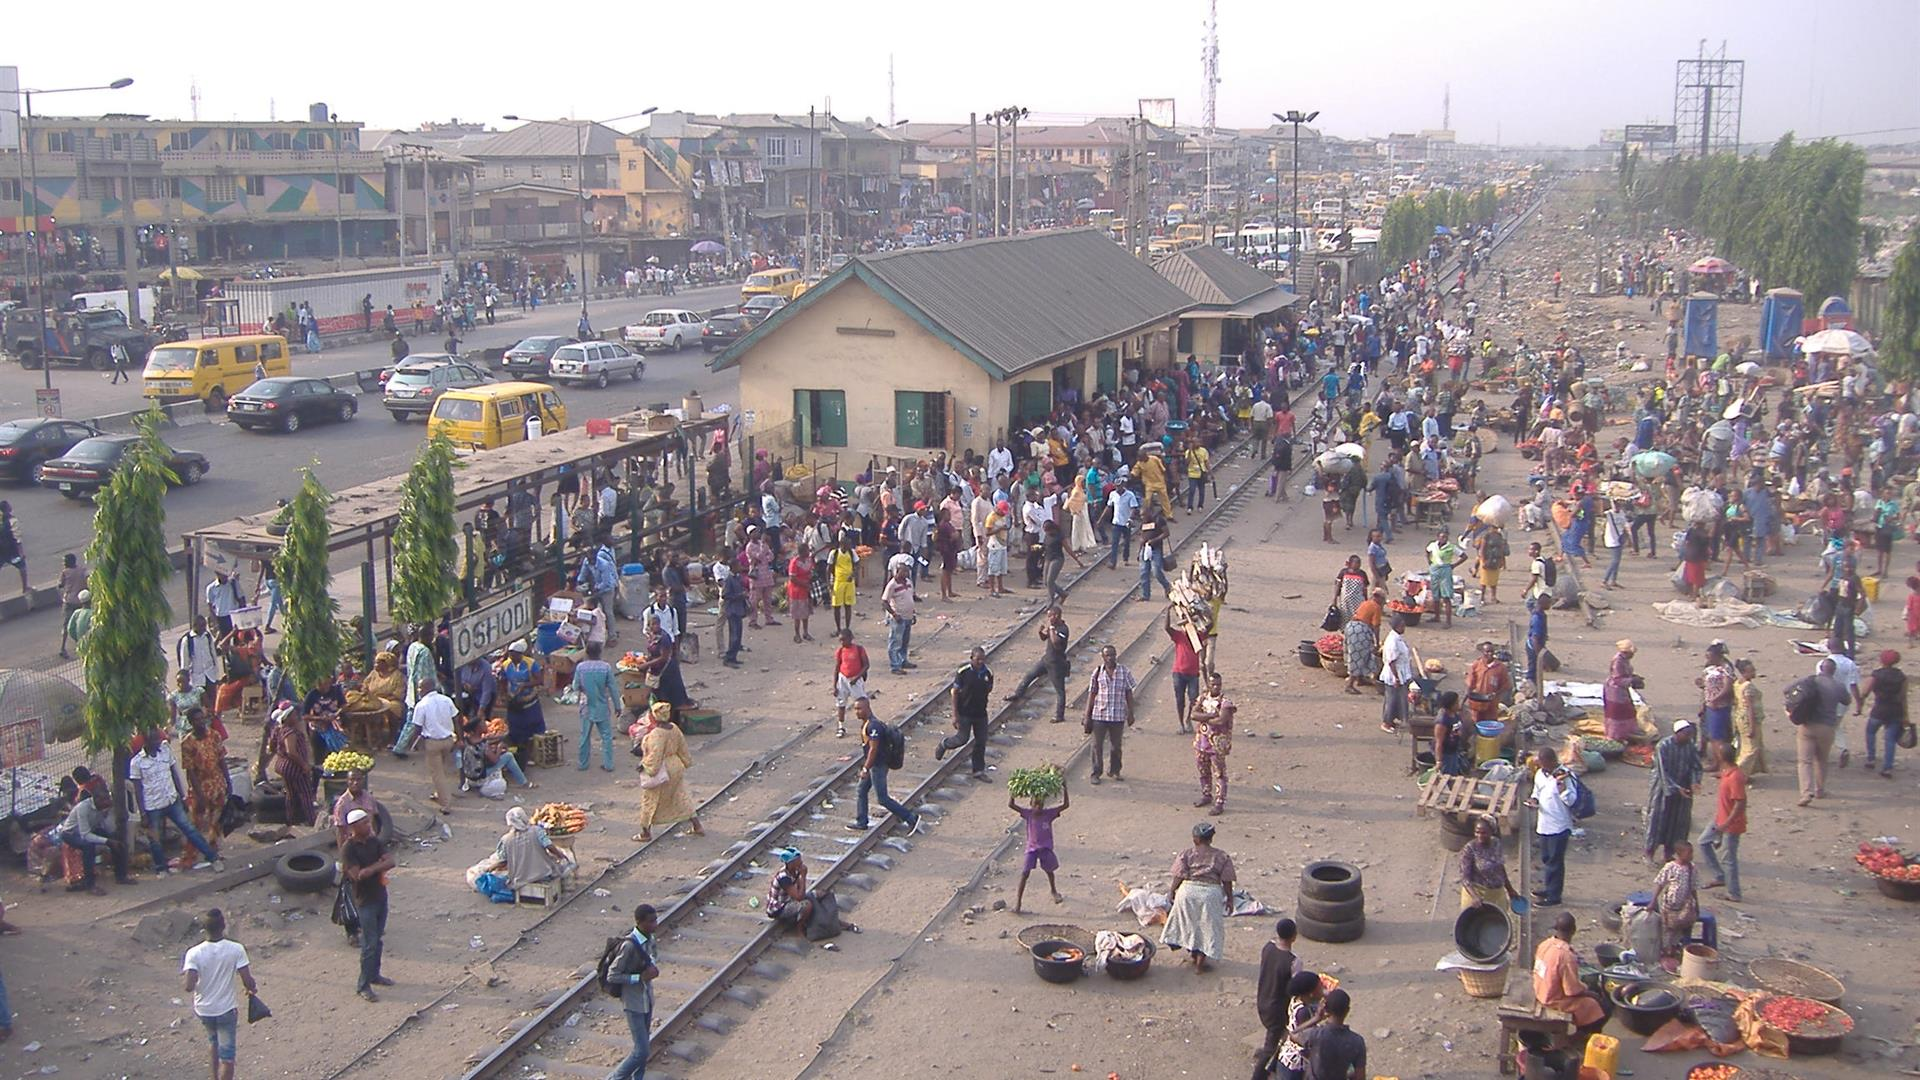 Train Stations In Oshodi, Lagos, Nigeria Photo Taken By Mr